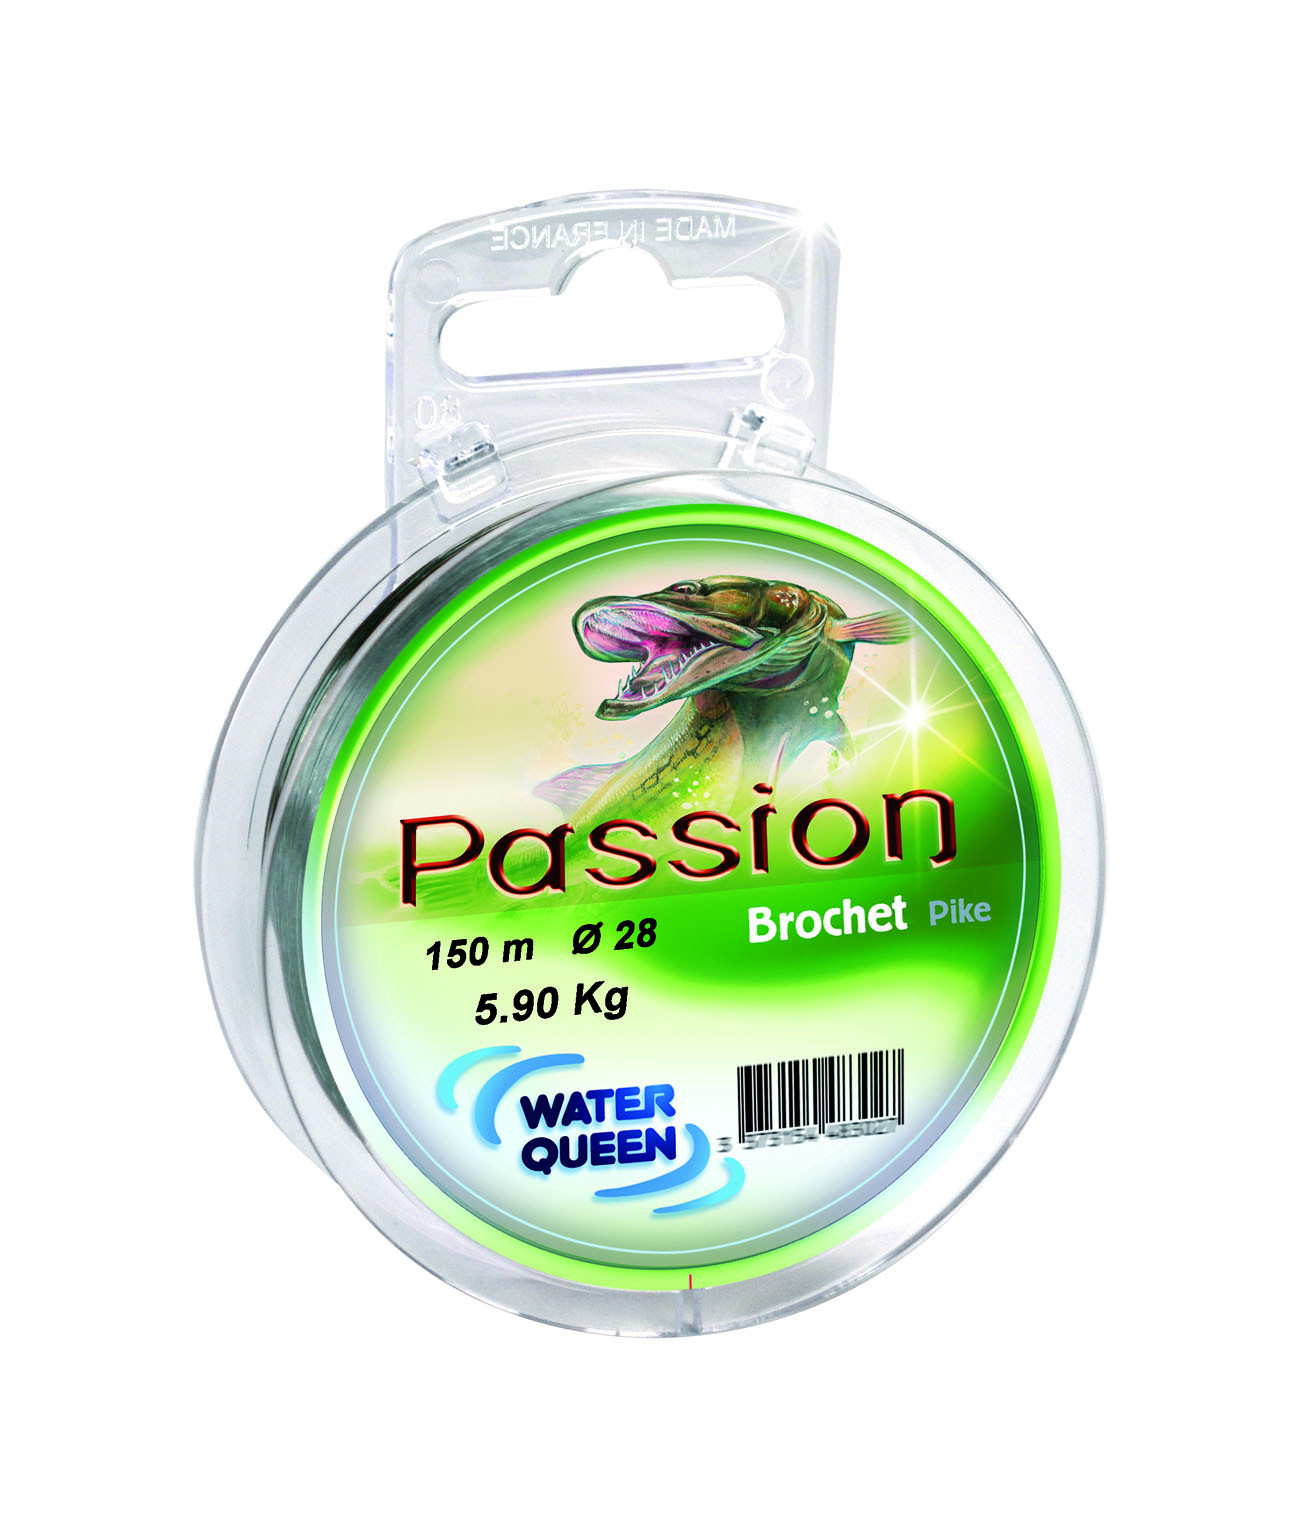 FIL PASSION BROCHET 150m WATER QUEEN